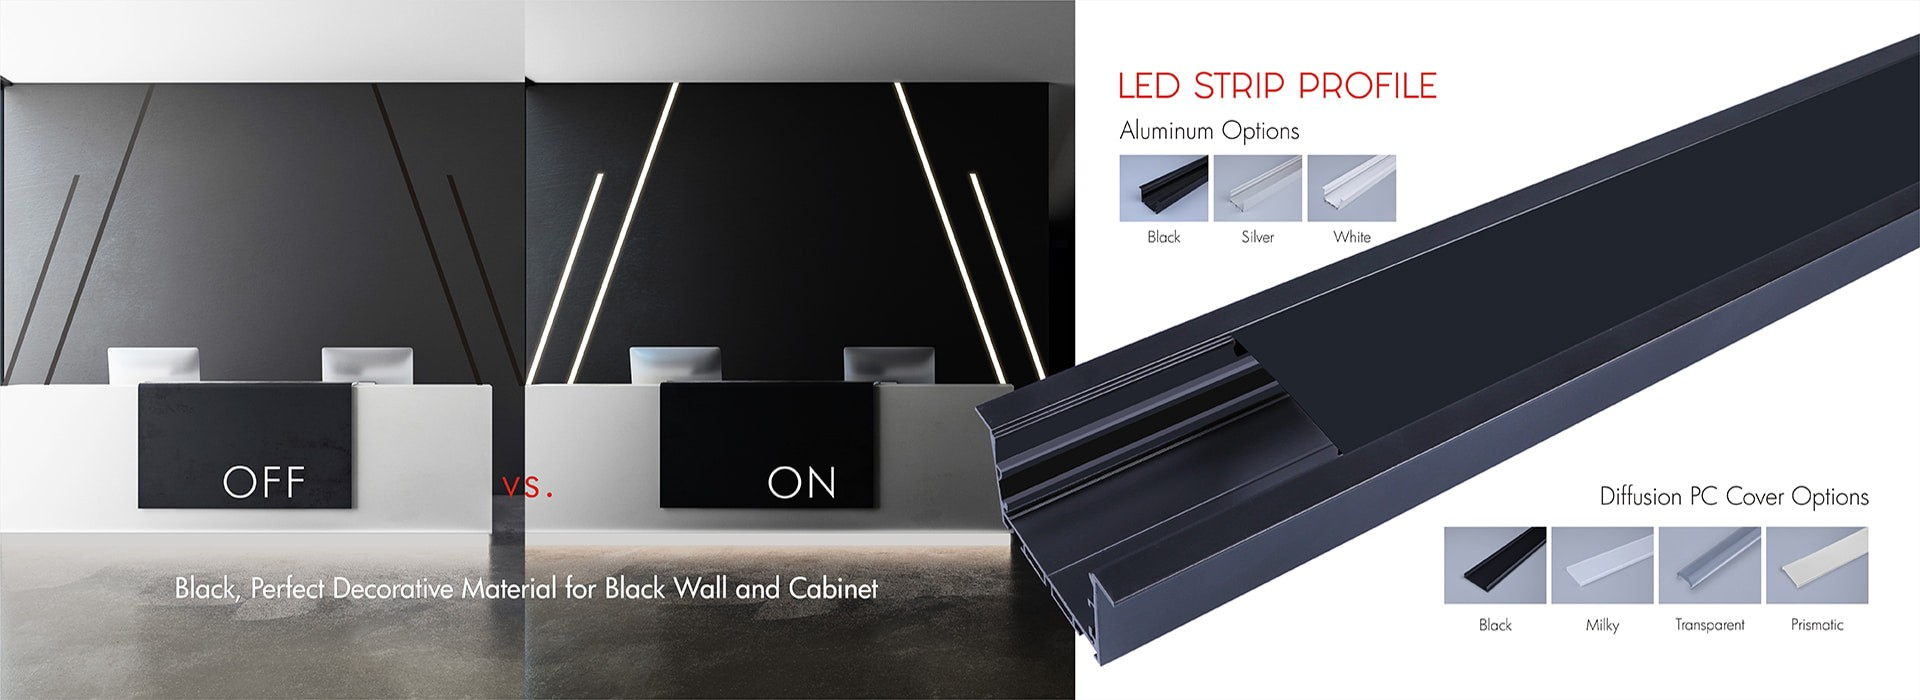 NEW ARRIVAL BANNER-LED Strip Profile-Black Profile & Cover